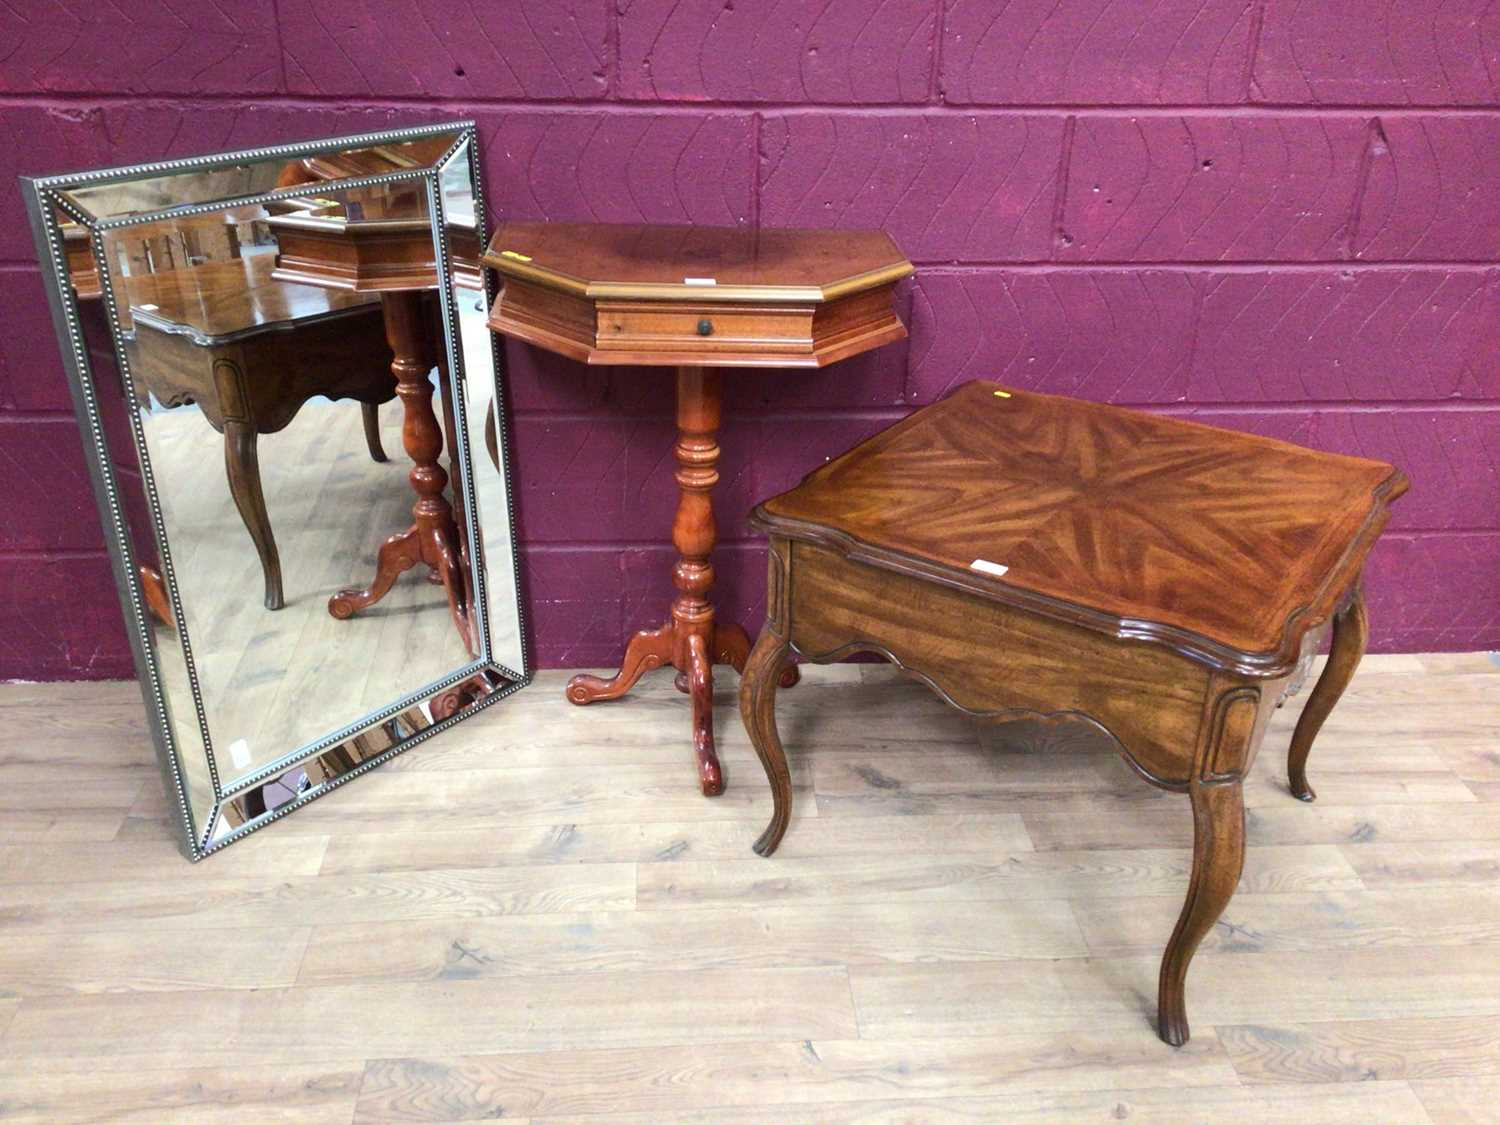 Italian inlaid marquetry table, low coffee table of square form with draw and a mirror (3)